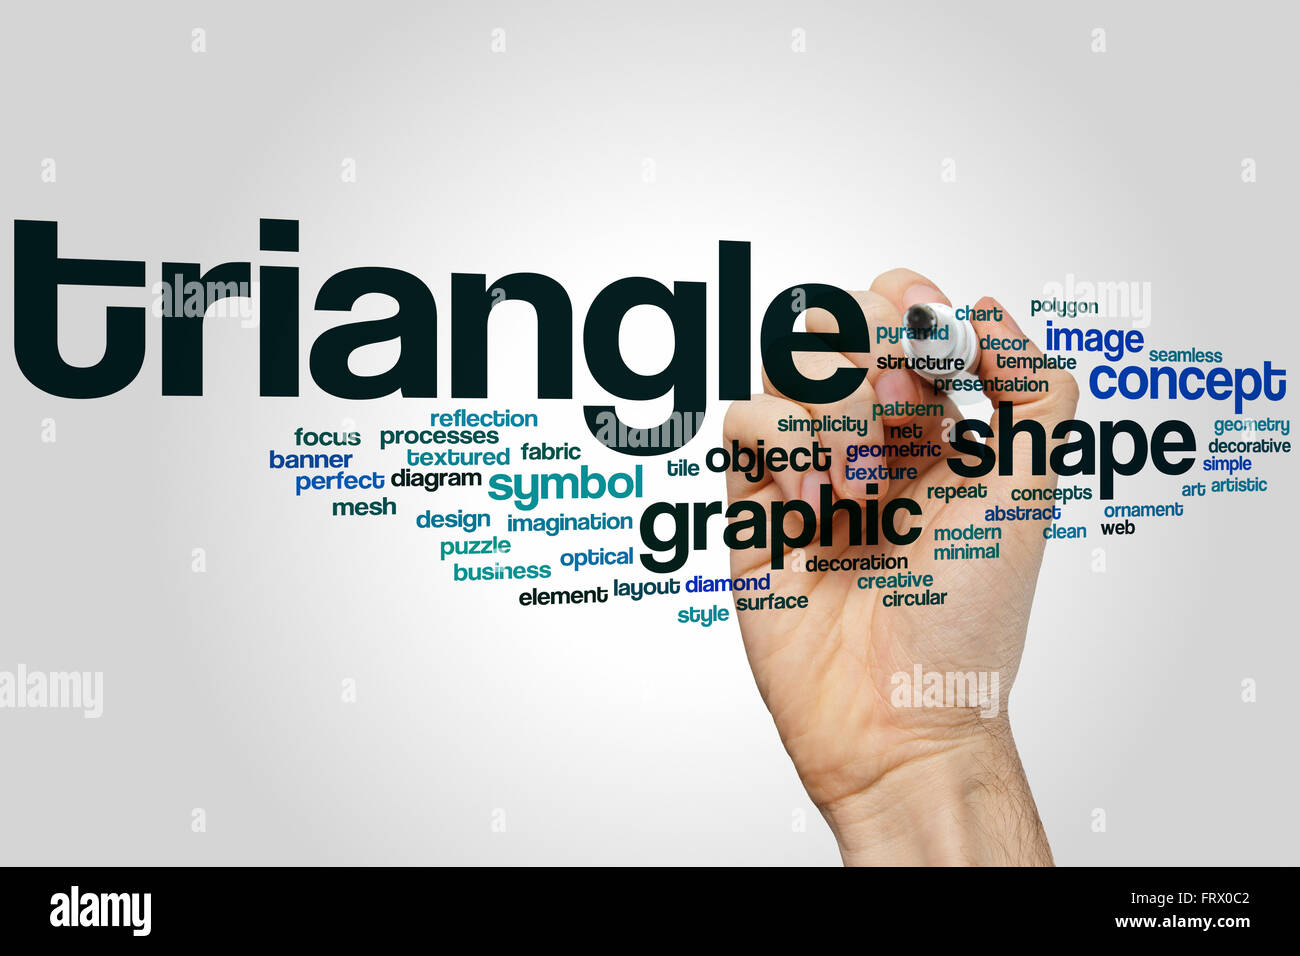 Triangle word cloud concept stock photo 100760018 alamy triangle word cloud concept buycottarizona Images